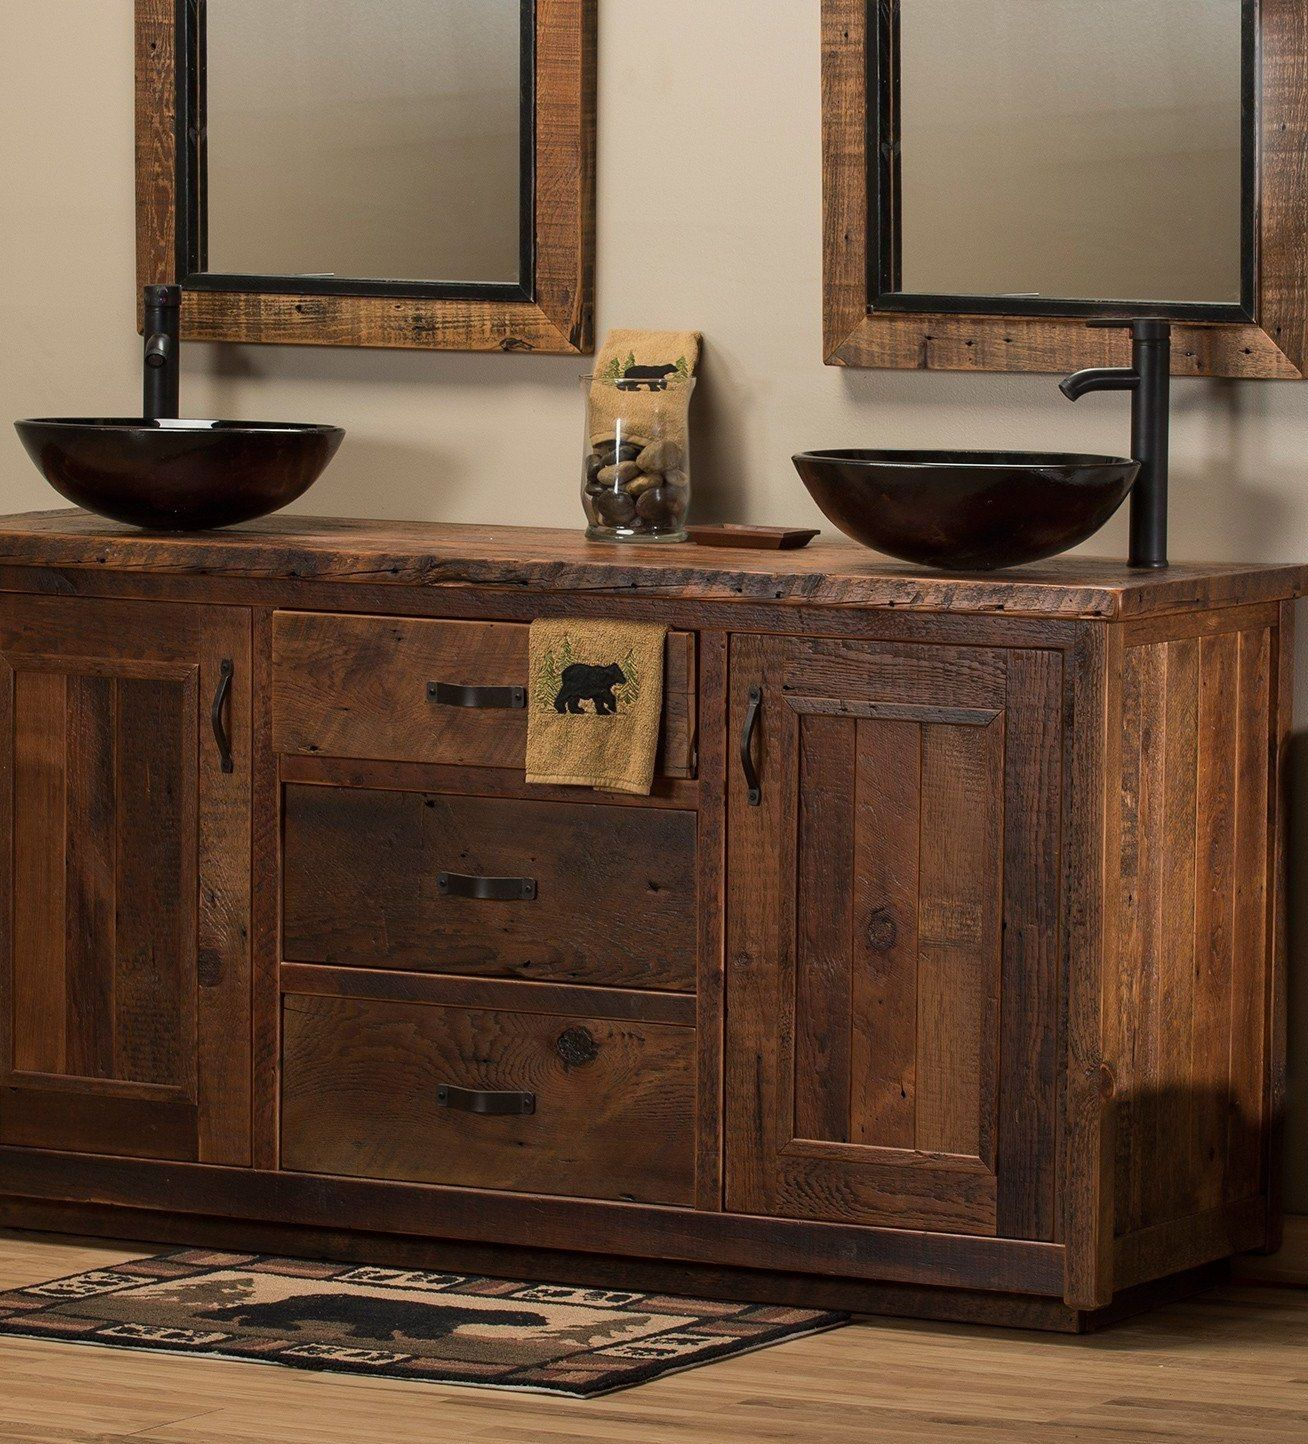 Timber Trails Refined Rustic In 2020 With Images Rustic